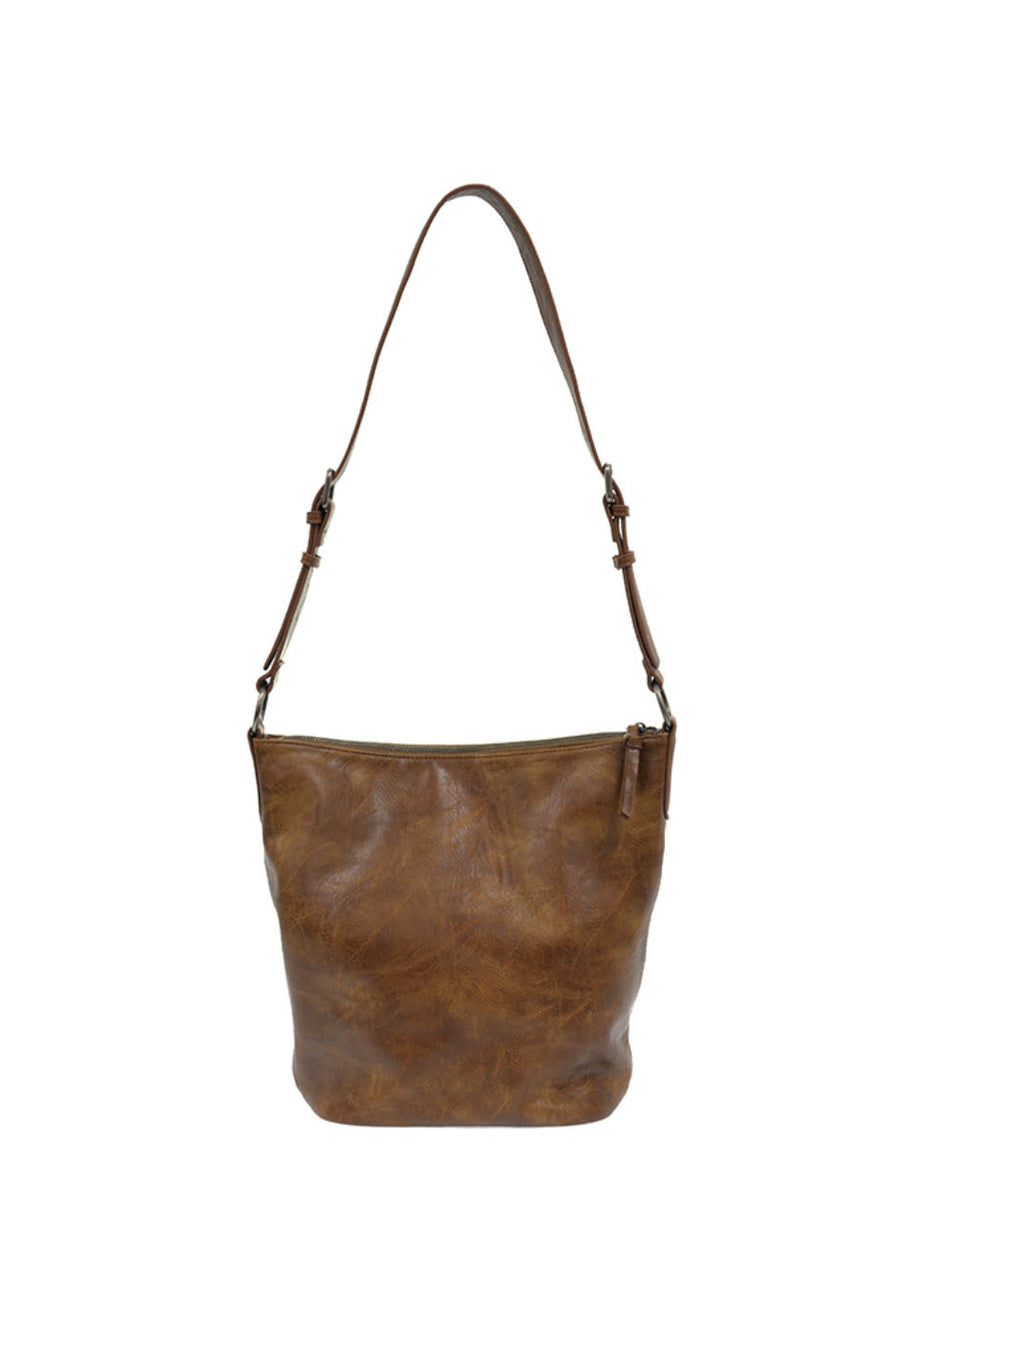 Joy Susan Nori Bucket Bag in Pecan